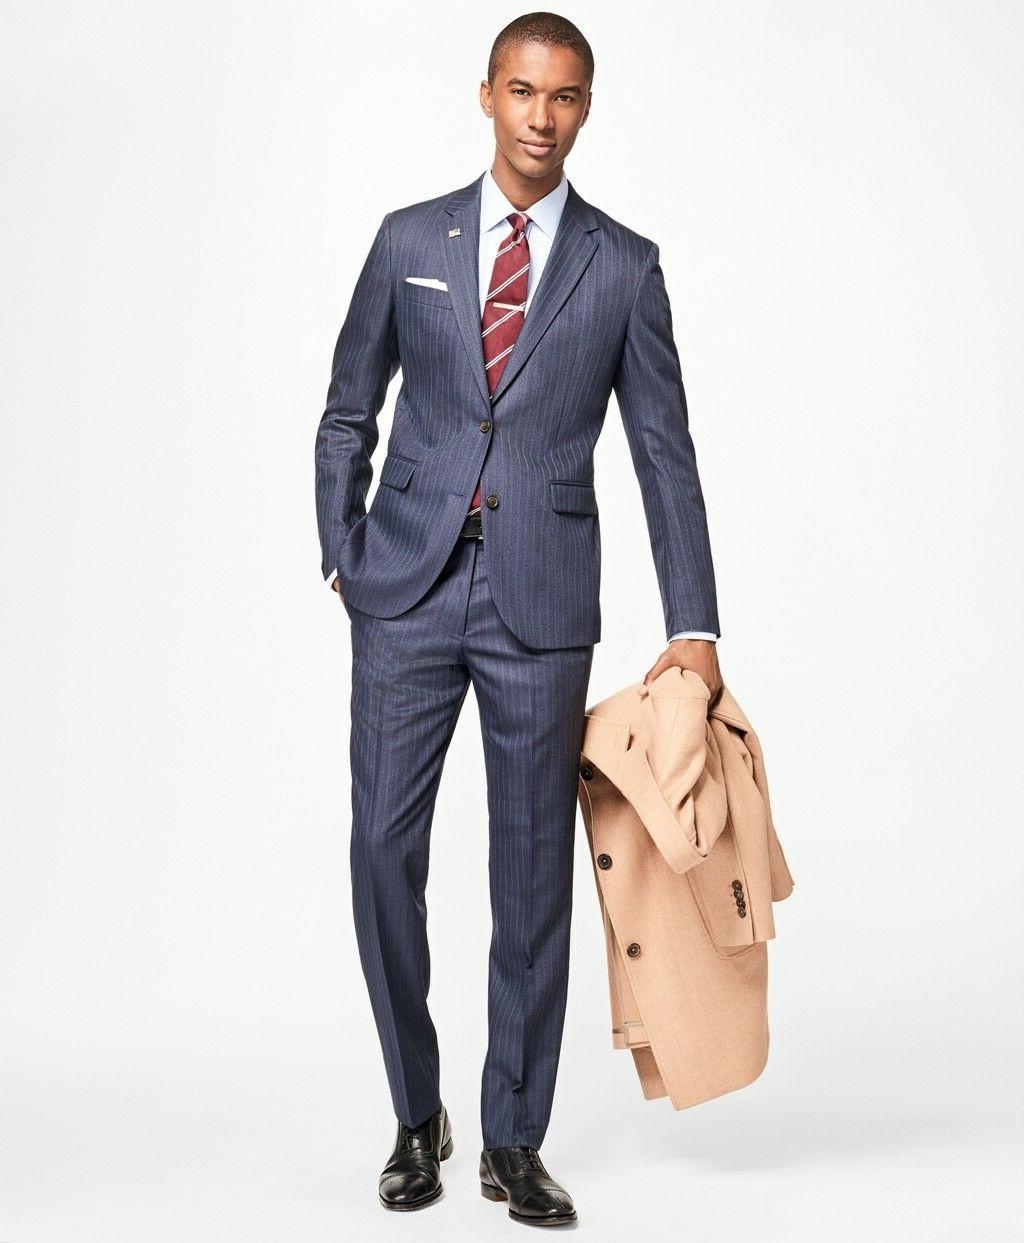 NWT Brooks Fit Textured 1818 Suit $1198